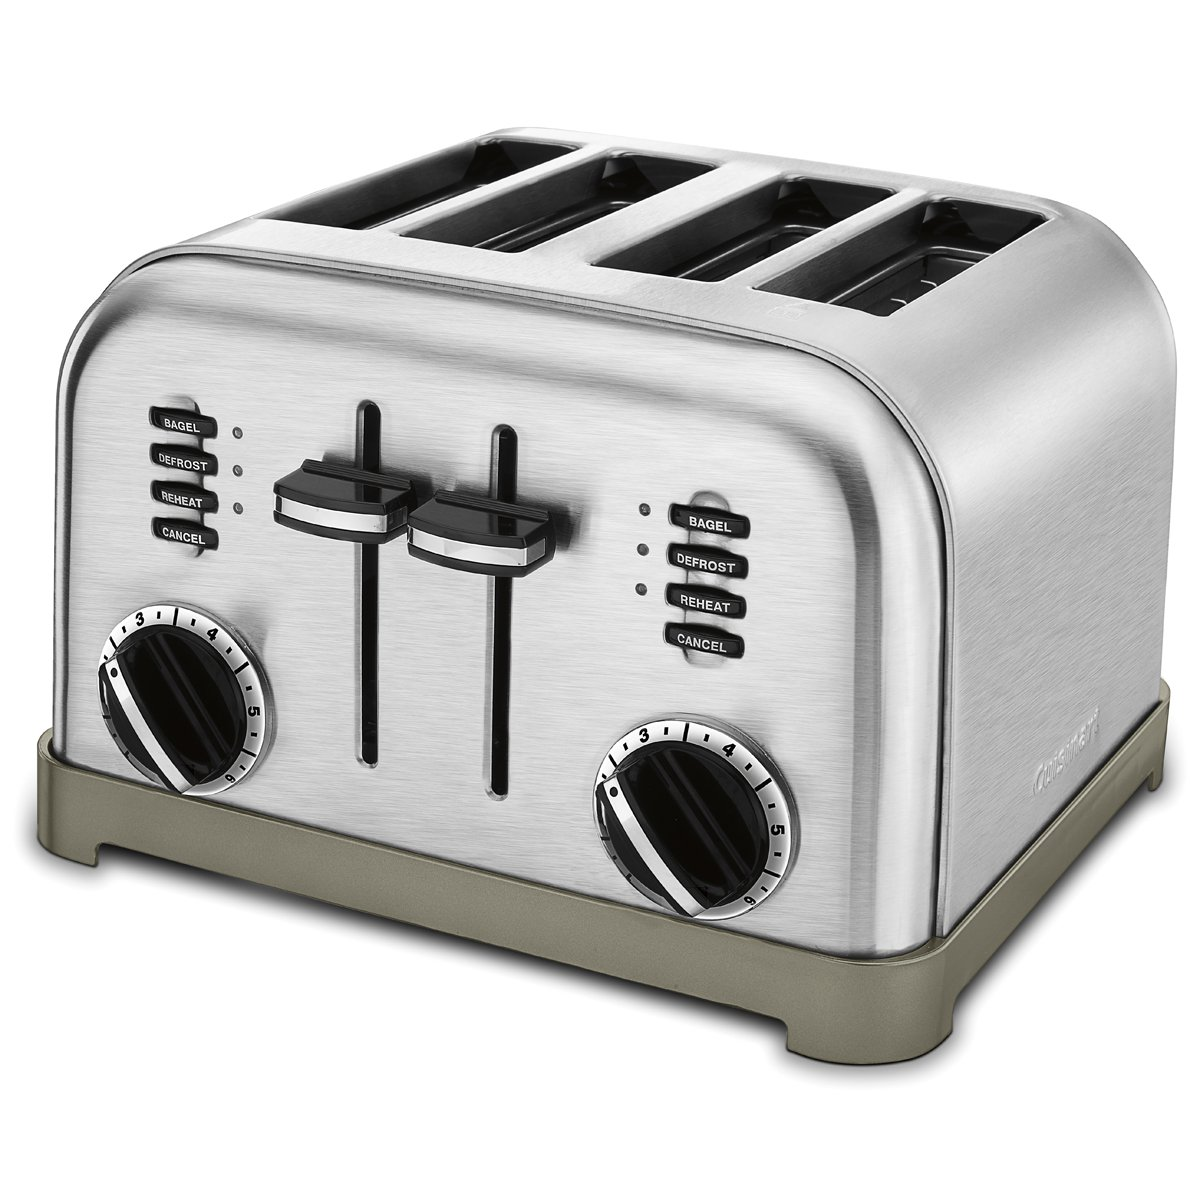 Cuisinart CPT-180P1 Metal Classic 4-Slice toaster, Brushed Stainless